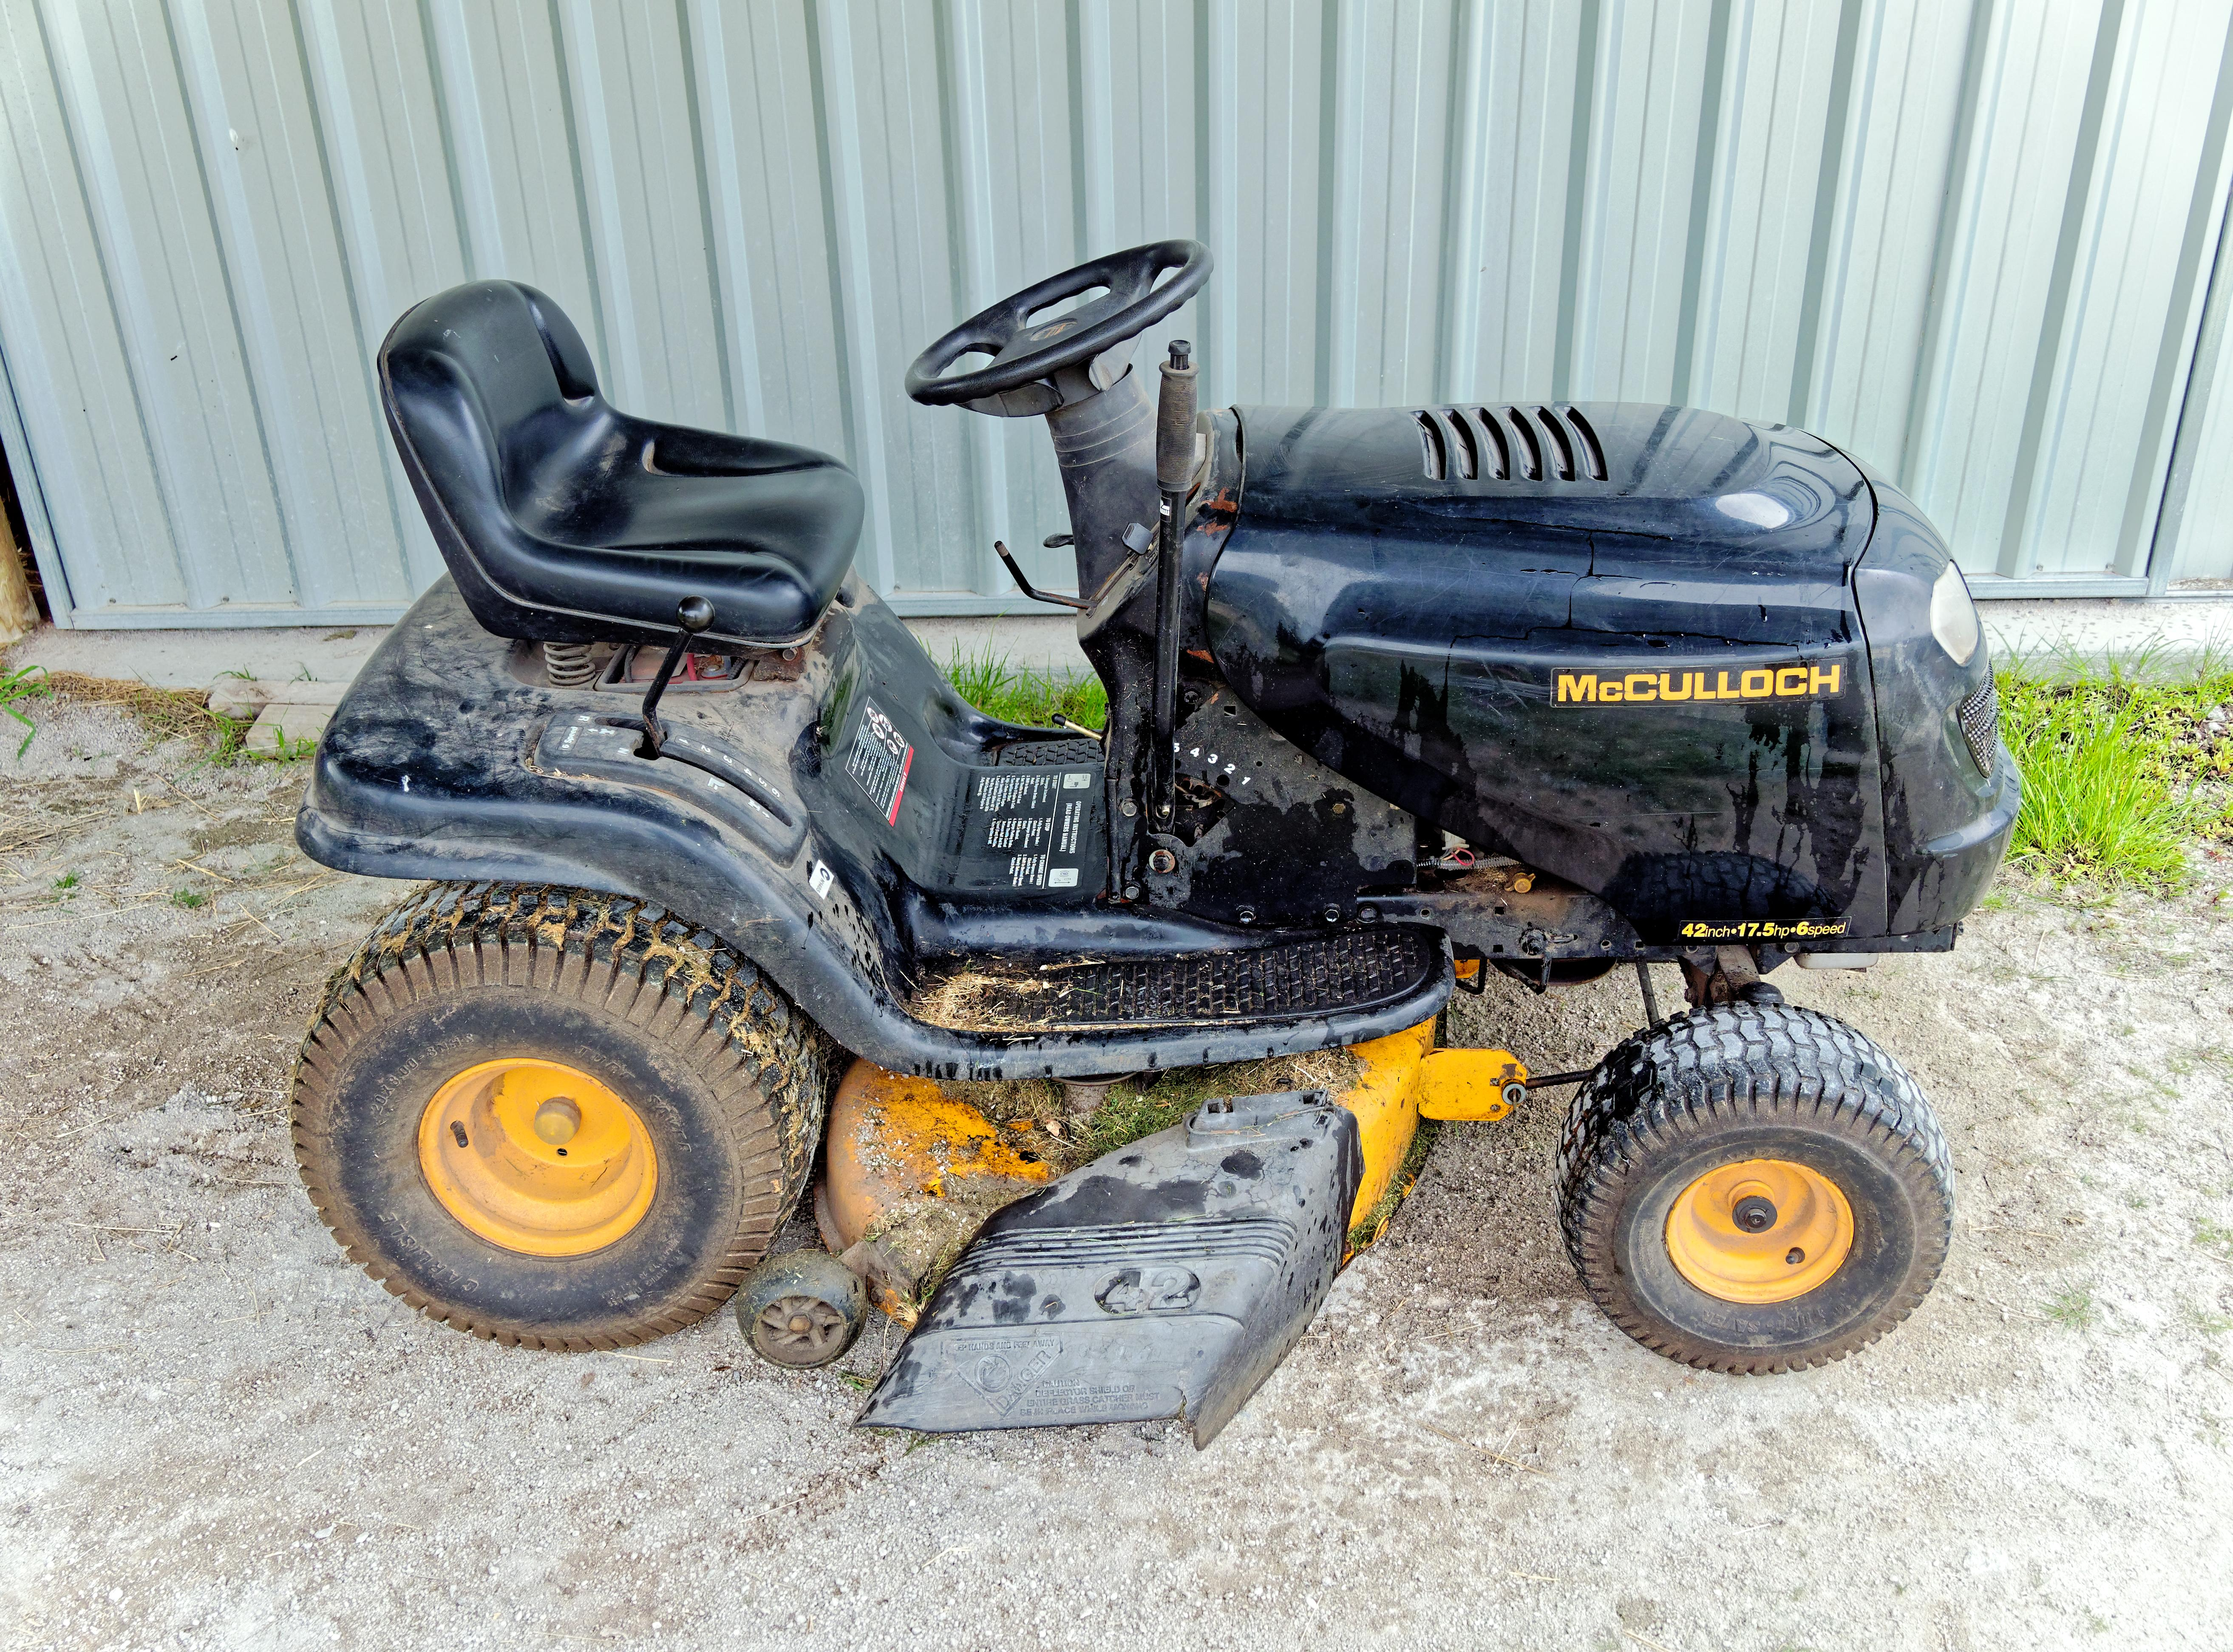 Lawn-mower-2.jpeg